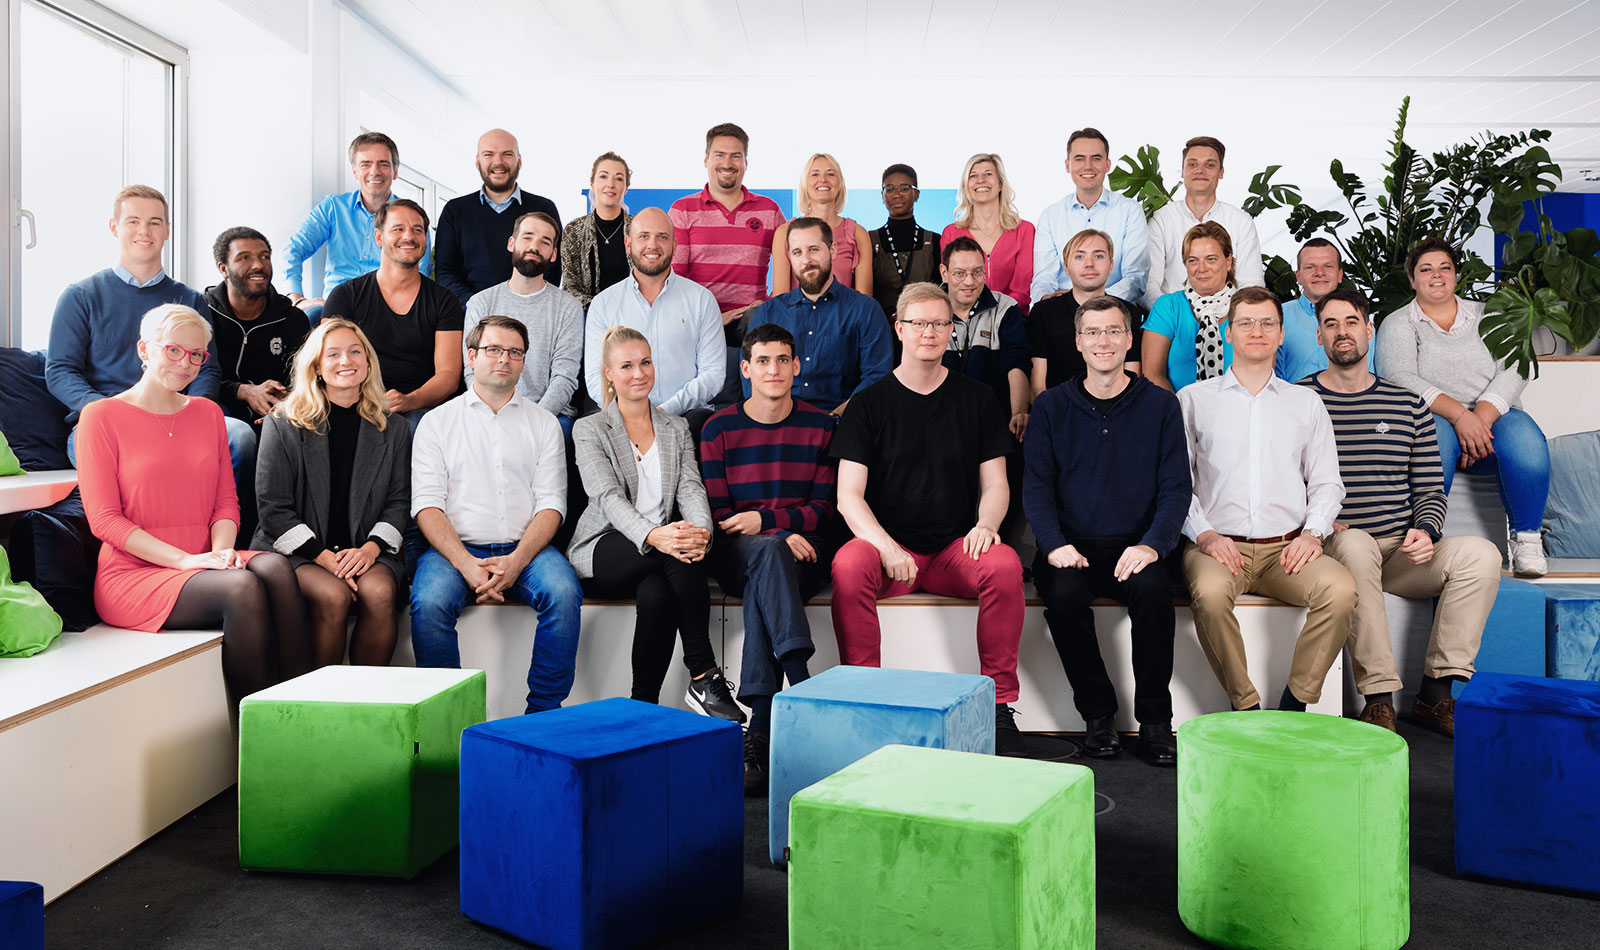 fintech insurance startup joonko's team in Berlin